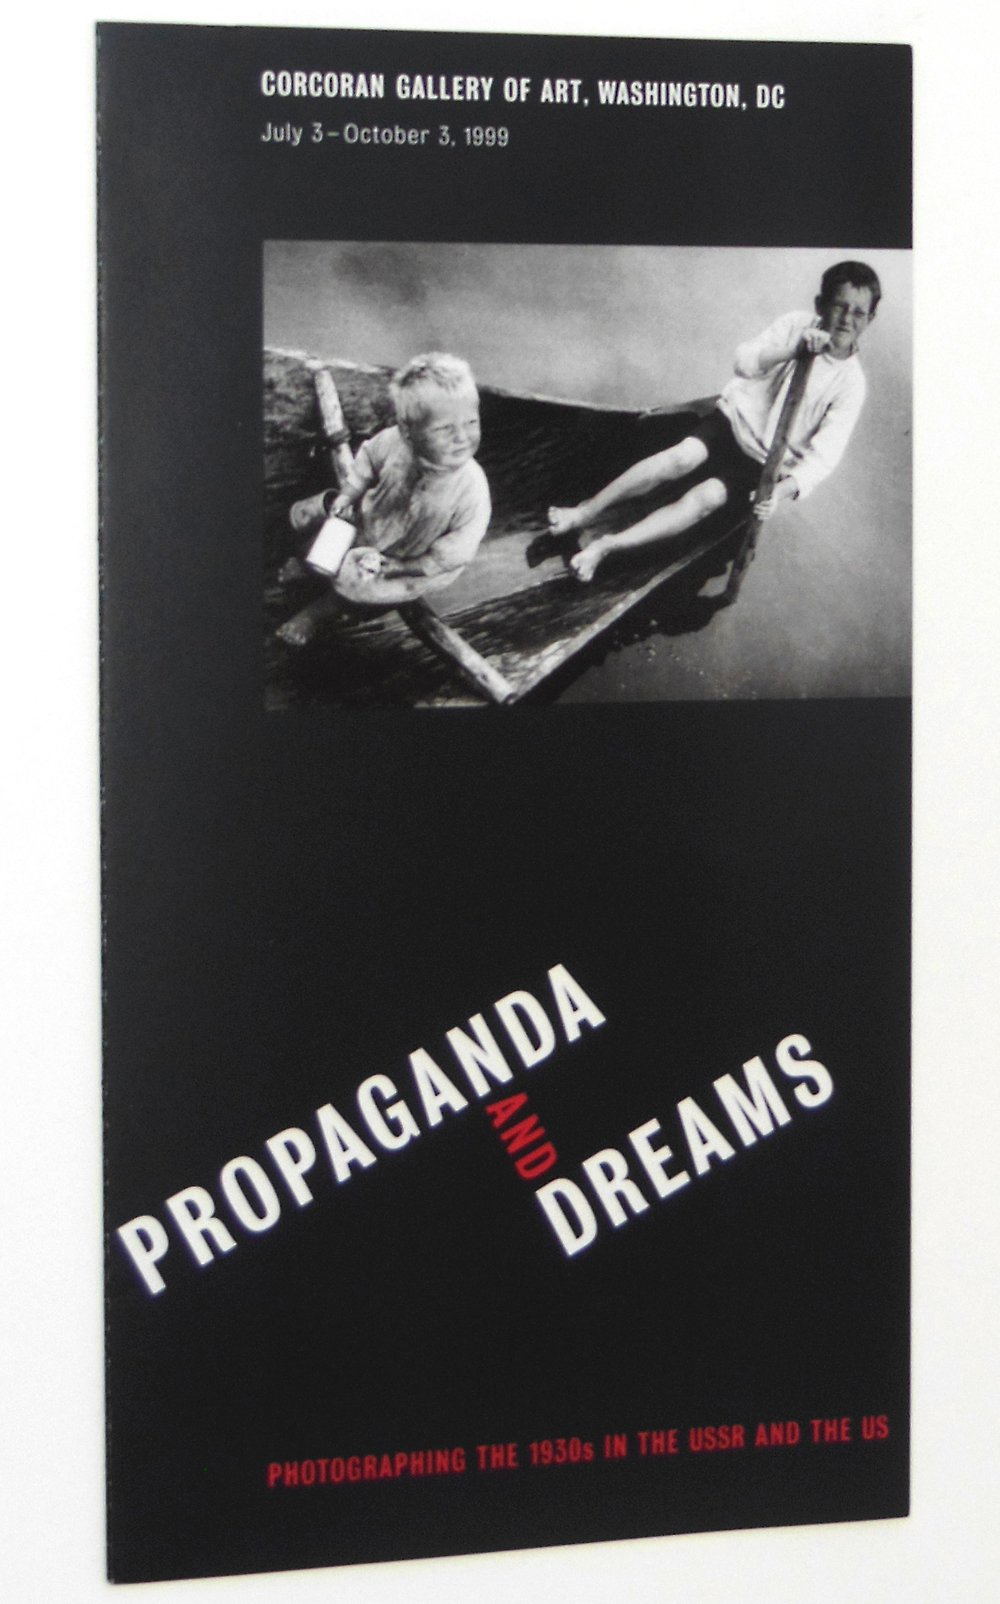 propaganda and dreams photographing the 1930s in the ussr and the us exhibition brochure